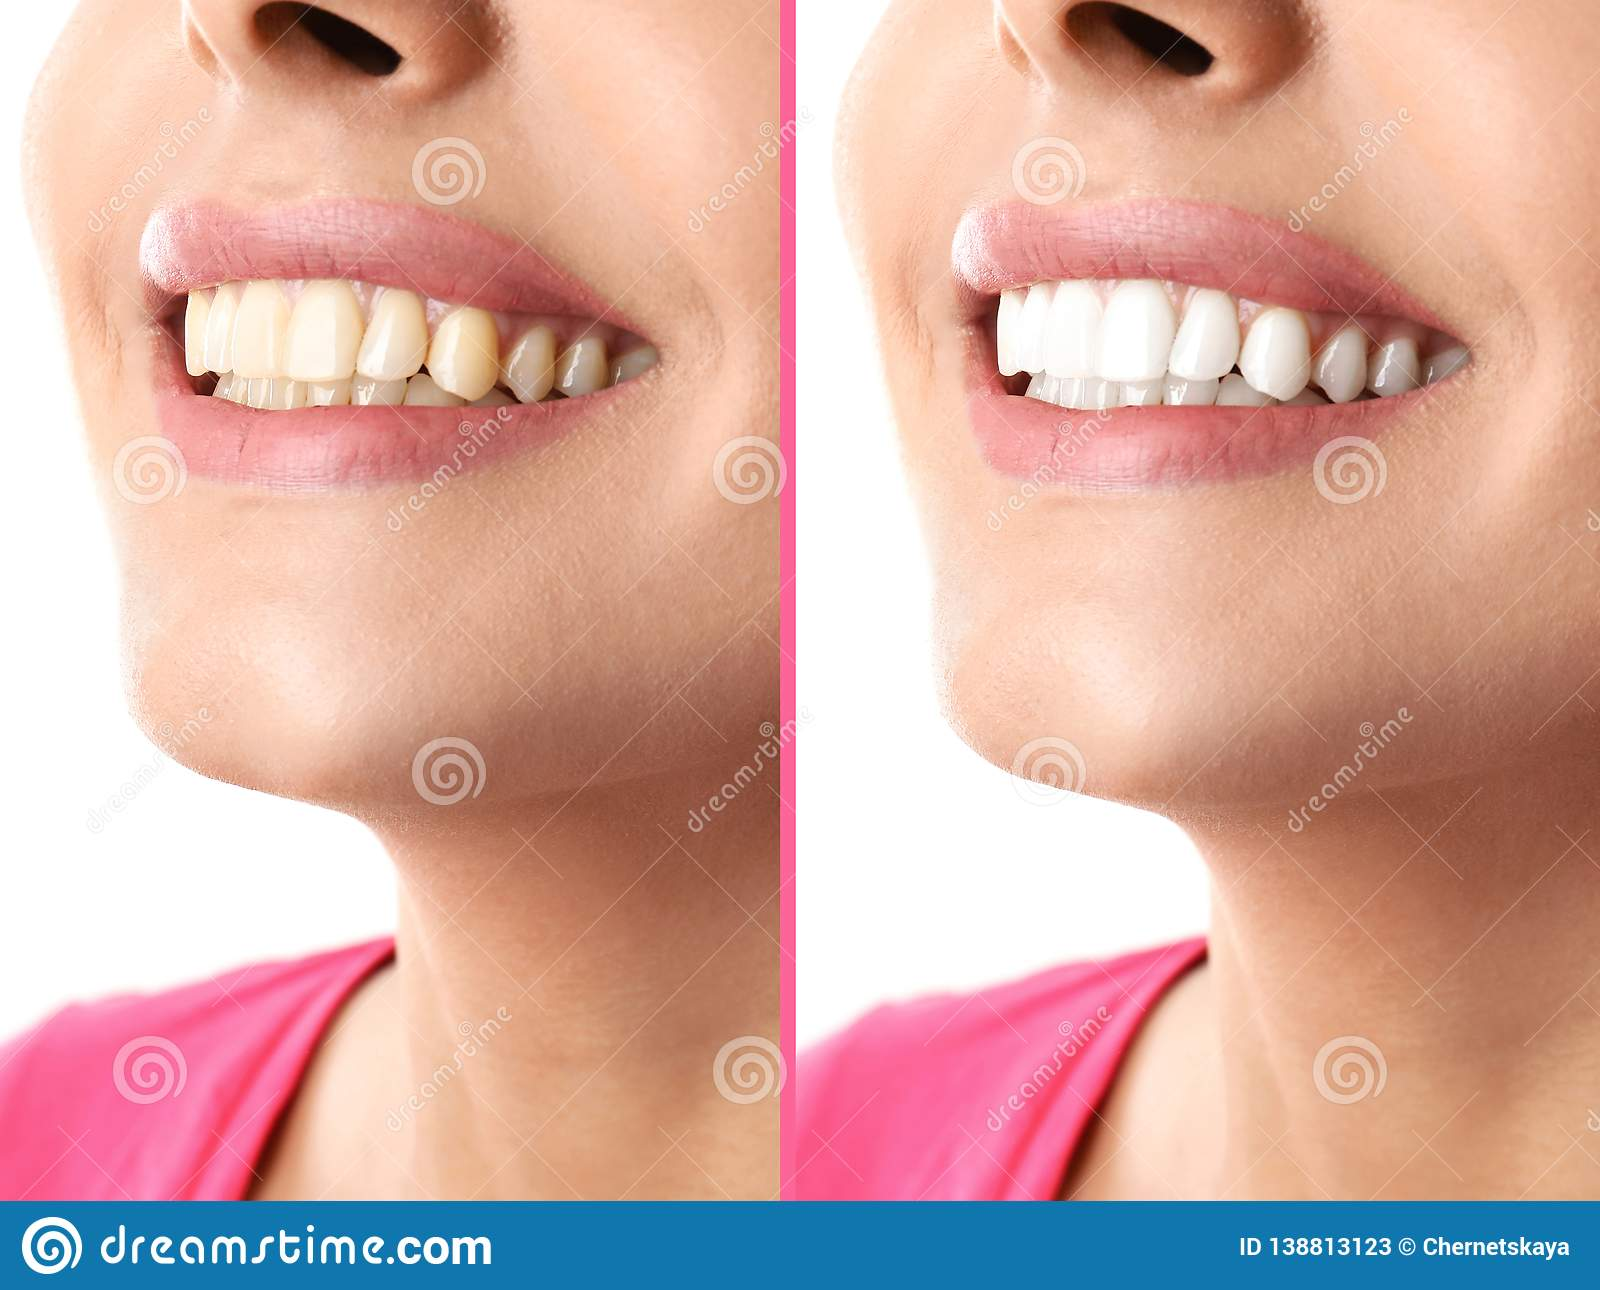 Smiling Woman Before And After Teeth Whitening Procedure